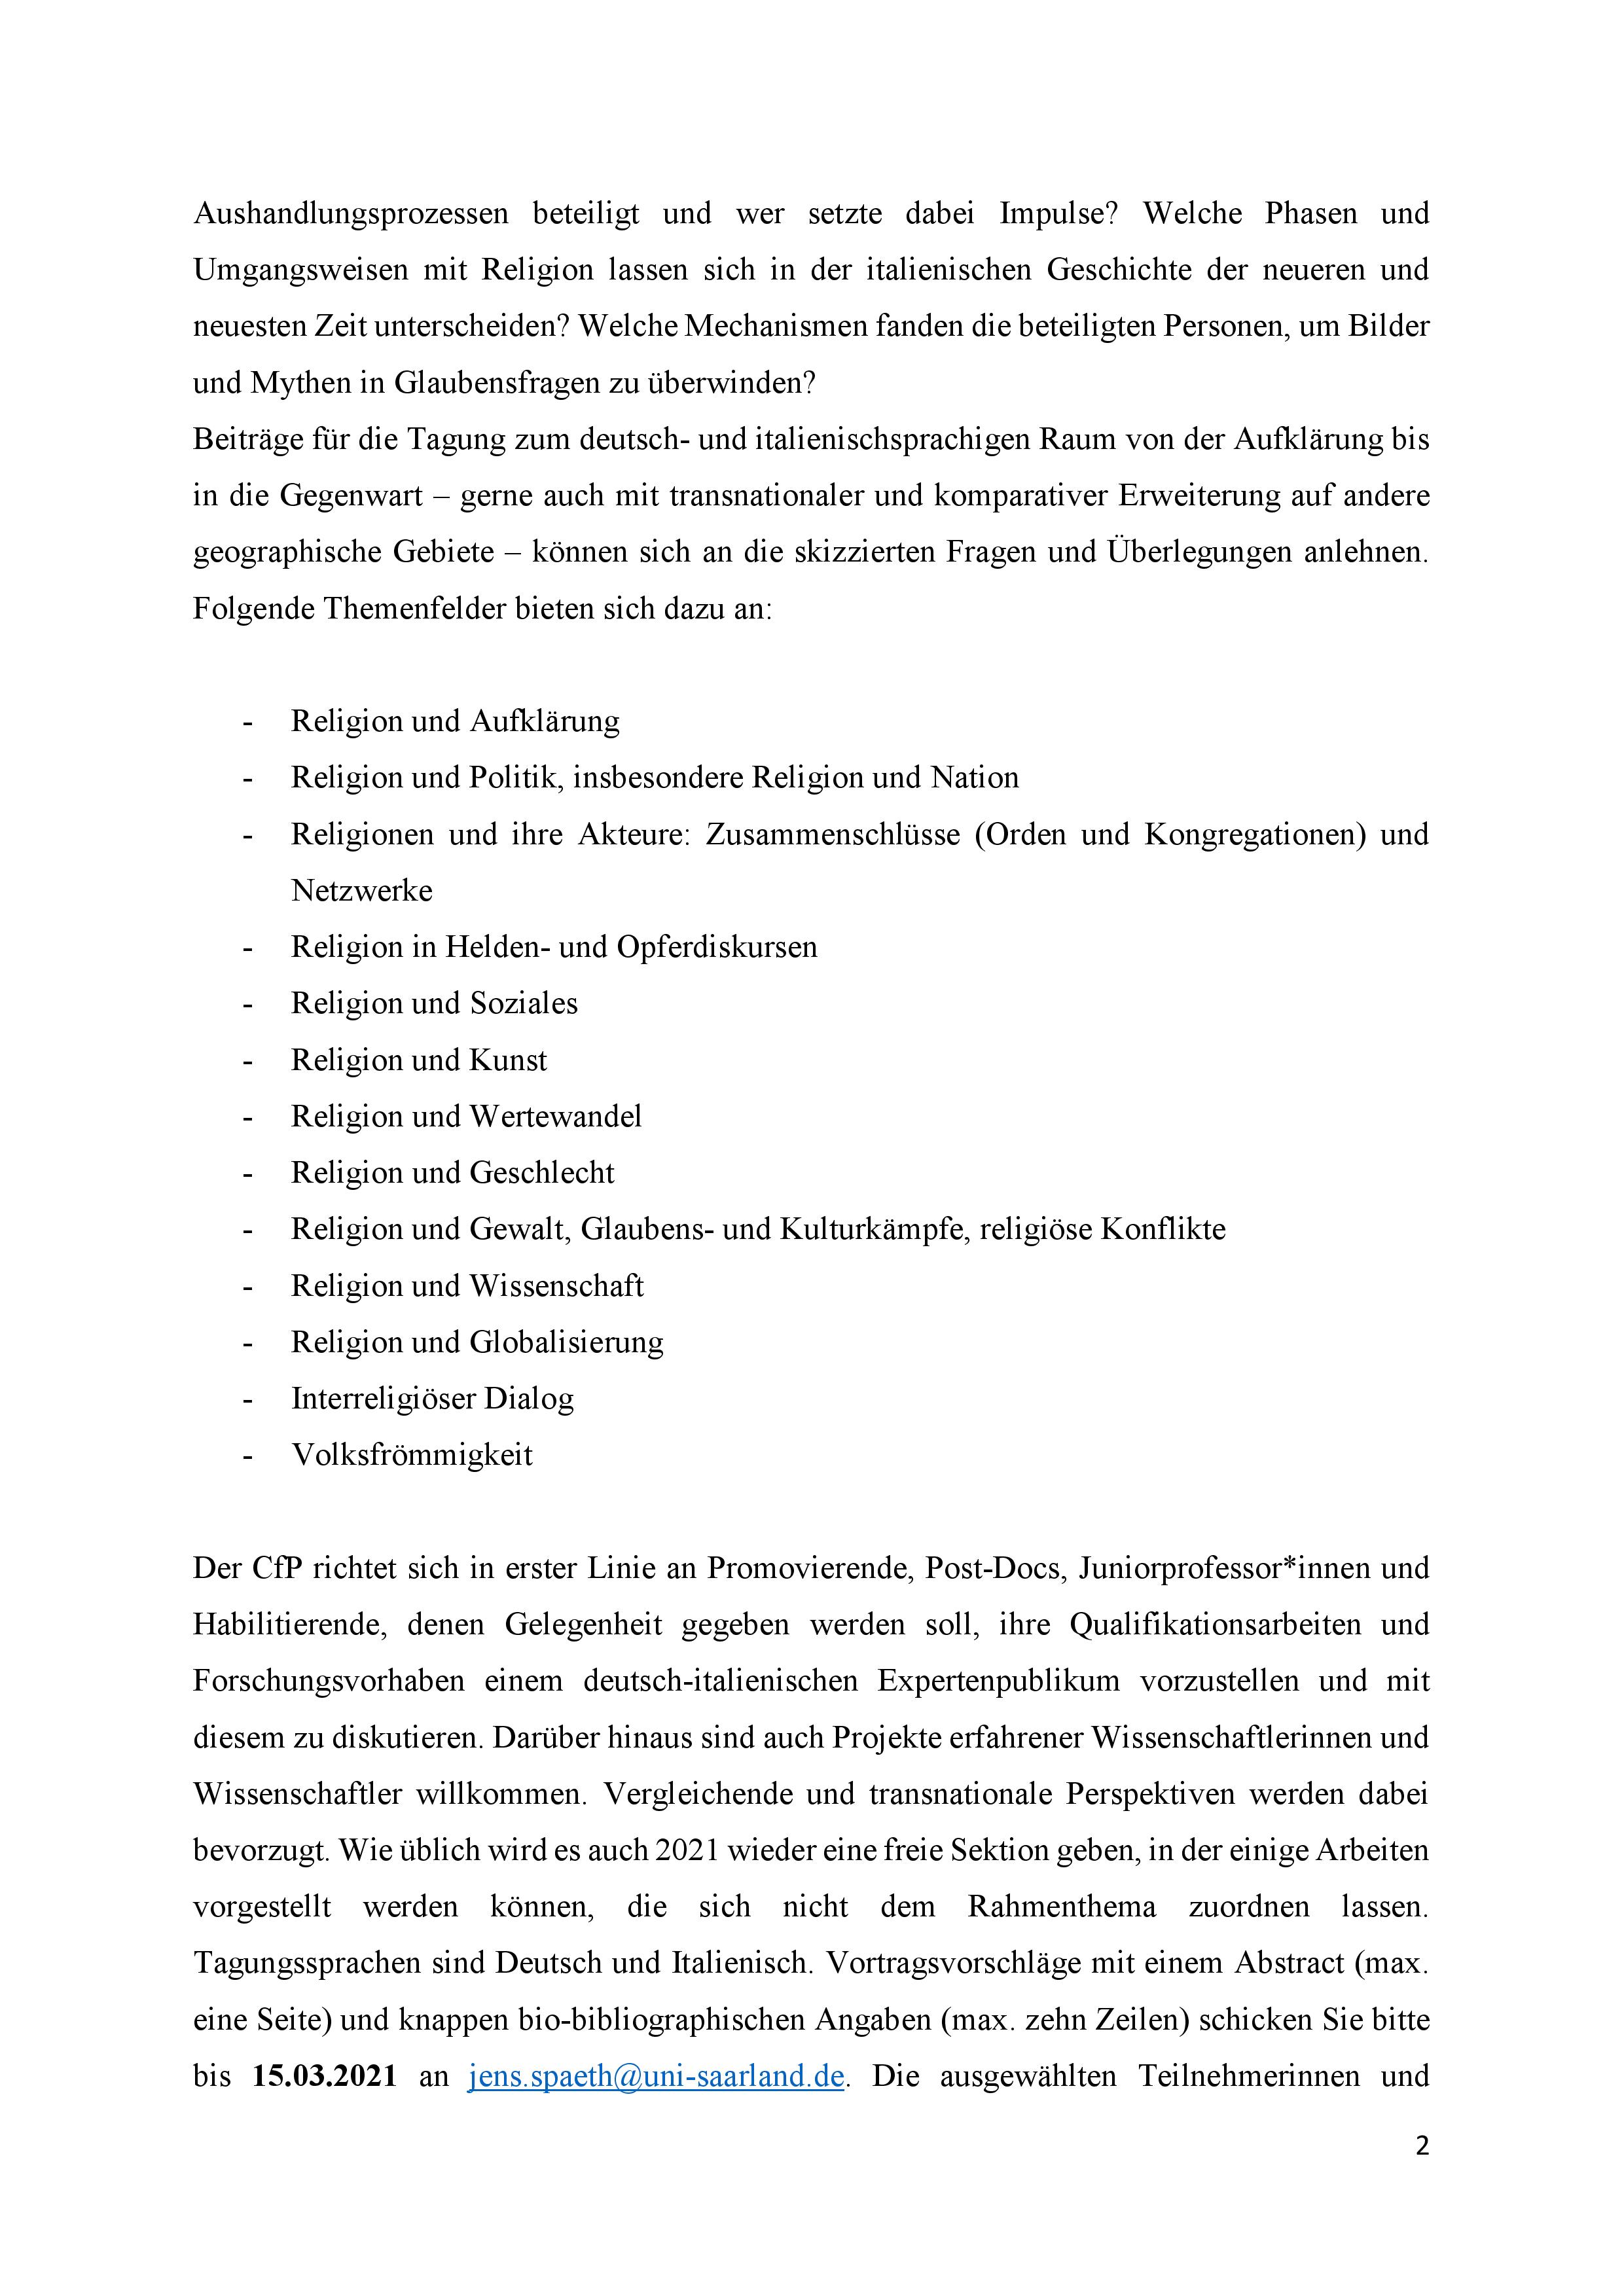 CfP AG Italien 2021-page-002